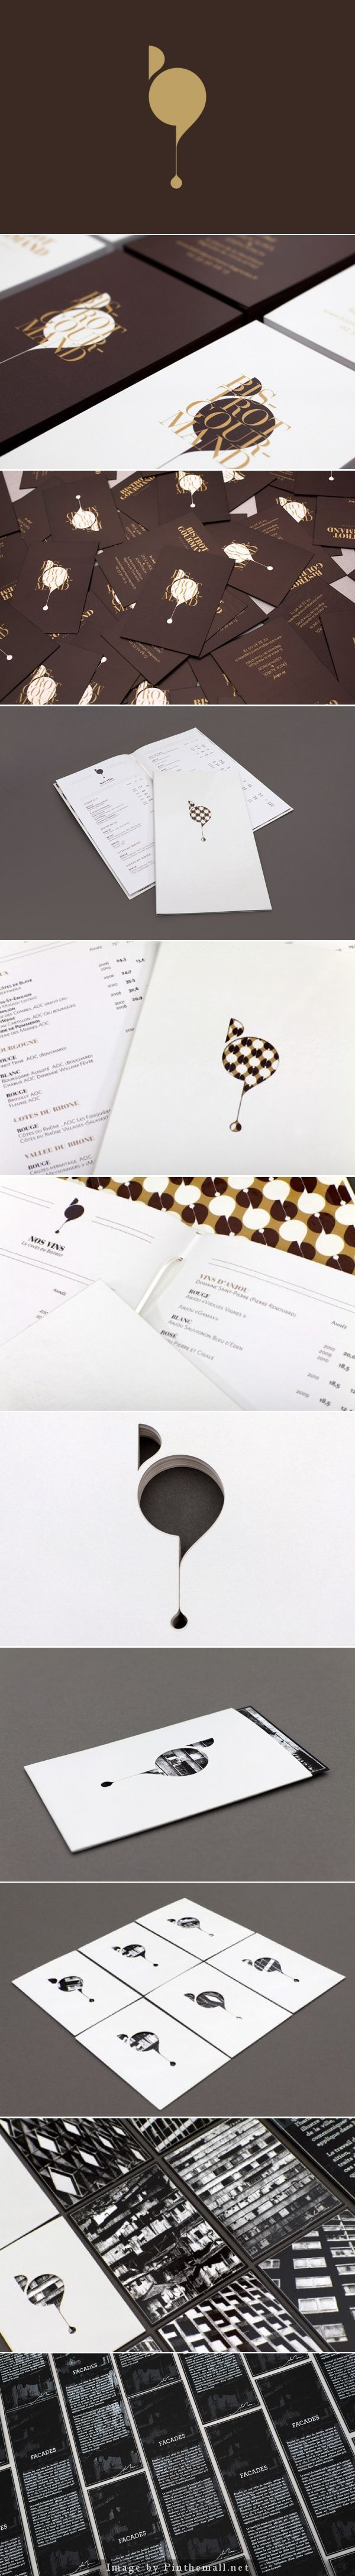 #inspiration #visual #identity #branding